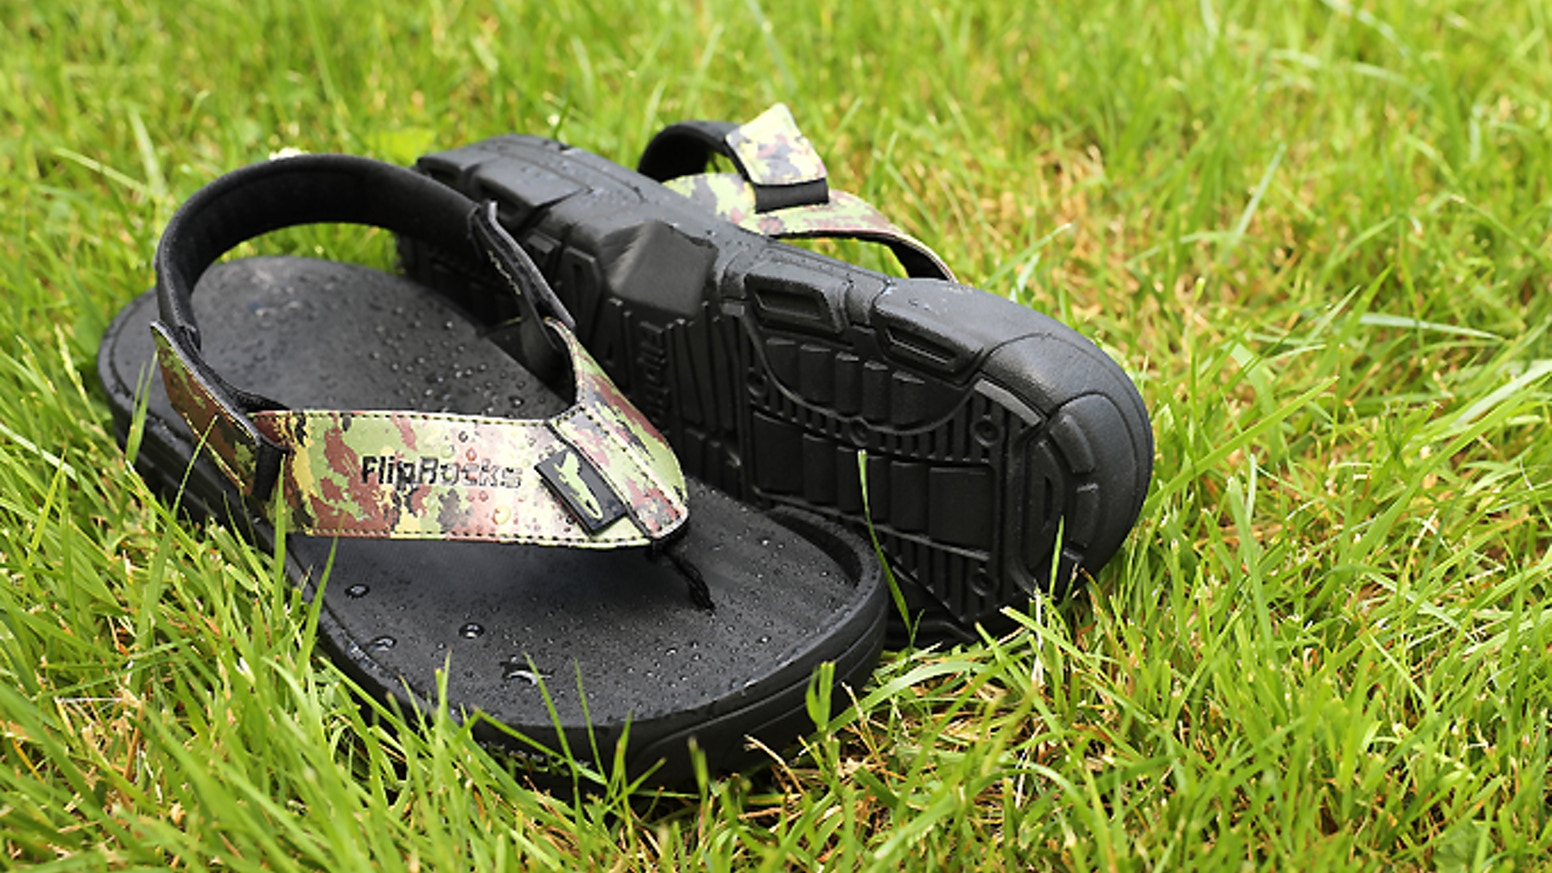 The World's First Interchangeable, Replaceable Flip Flop Soles For Various Outdoor Activities - Hiking, Fishing, Kayaking, Walking...